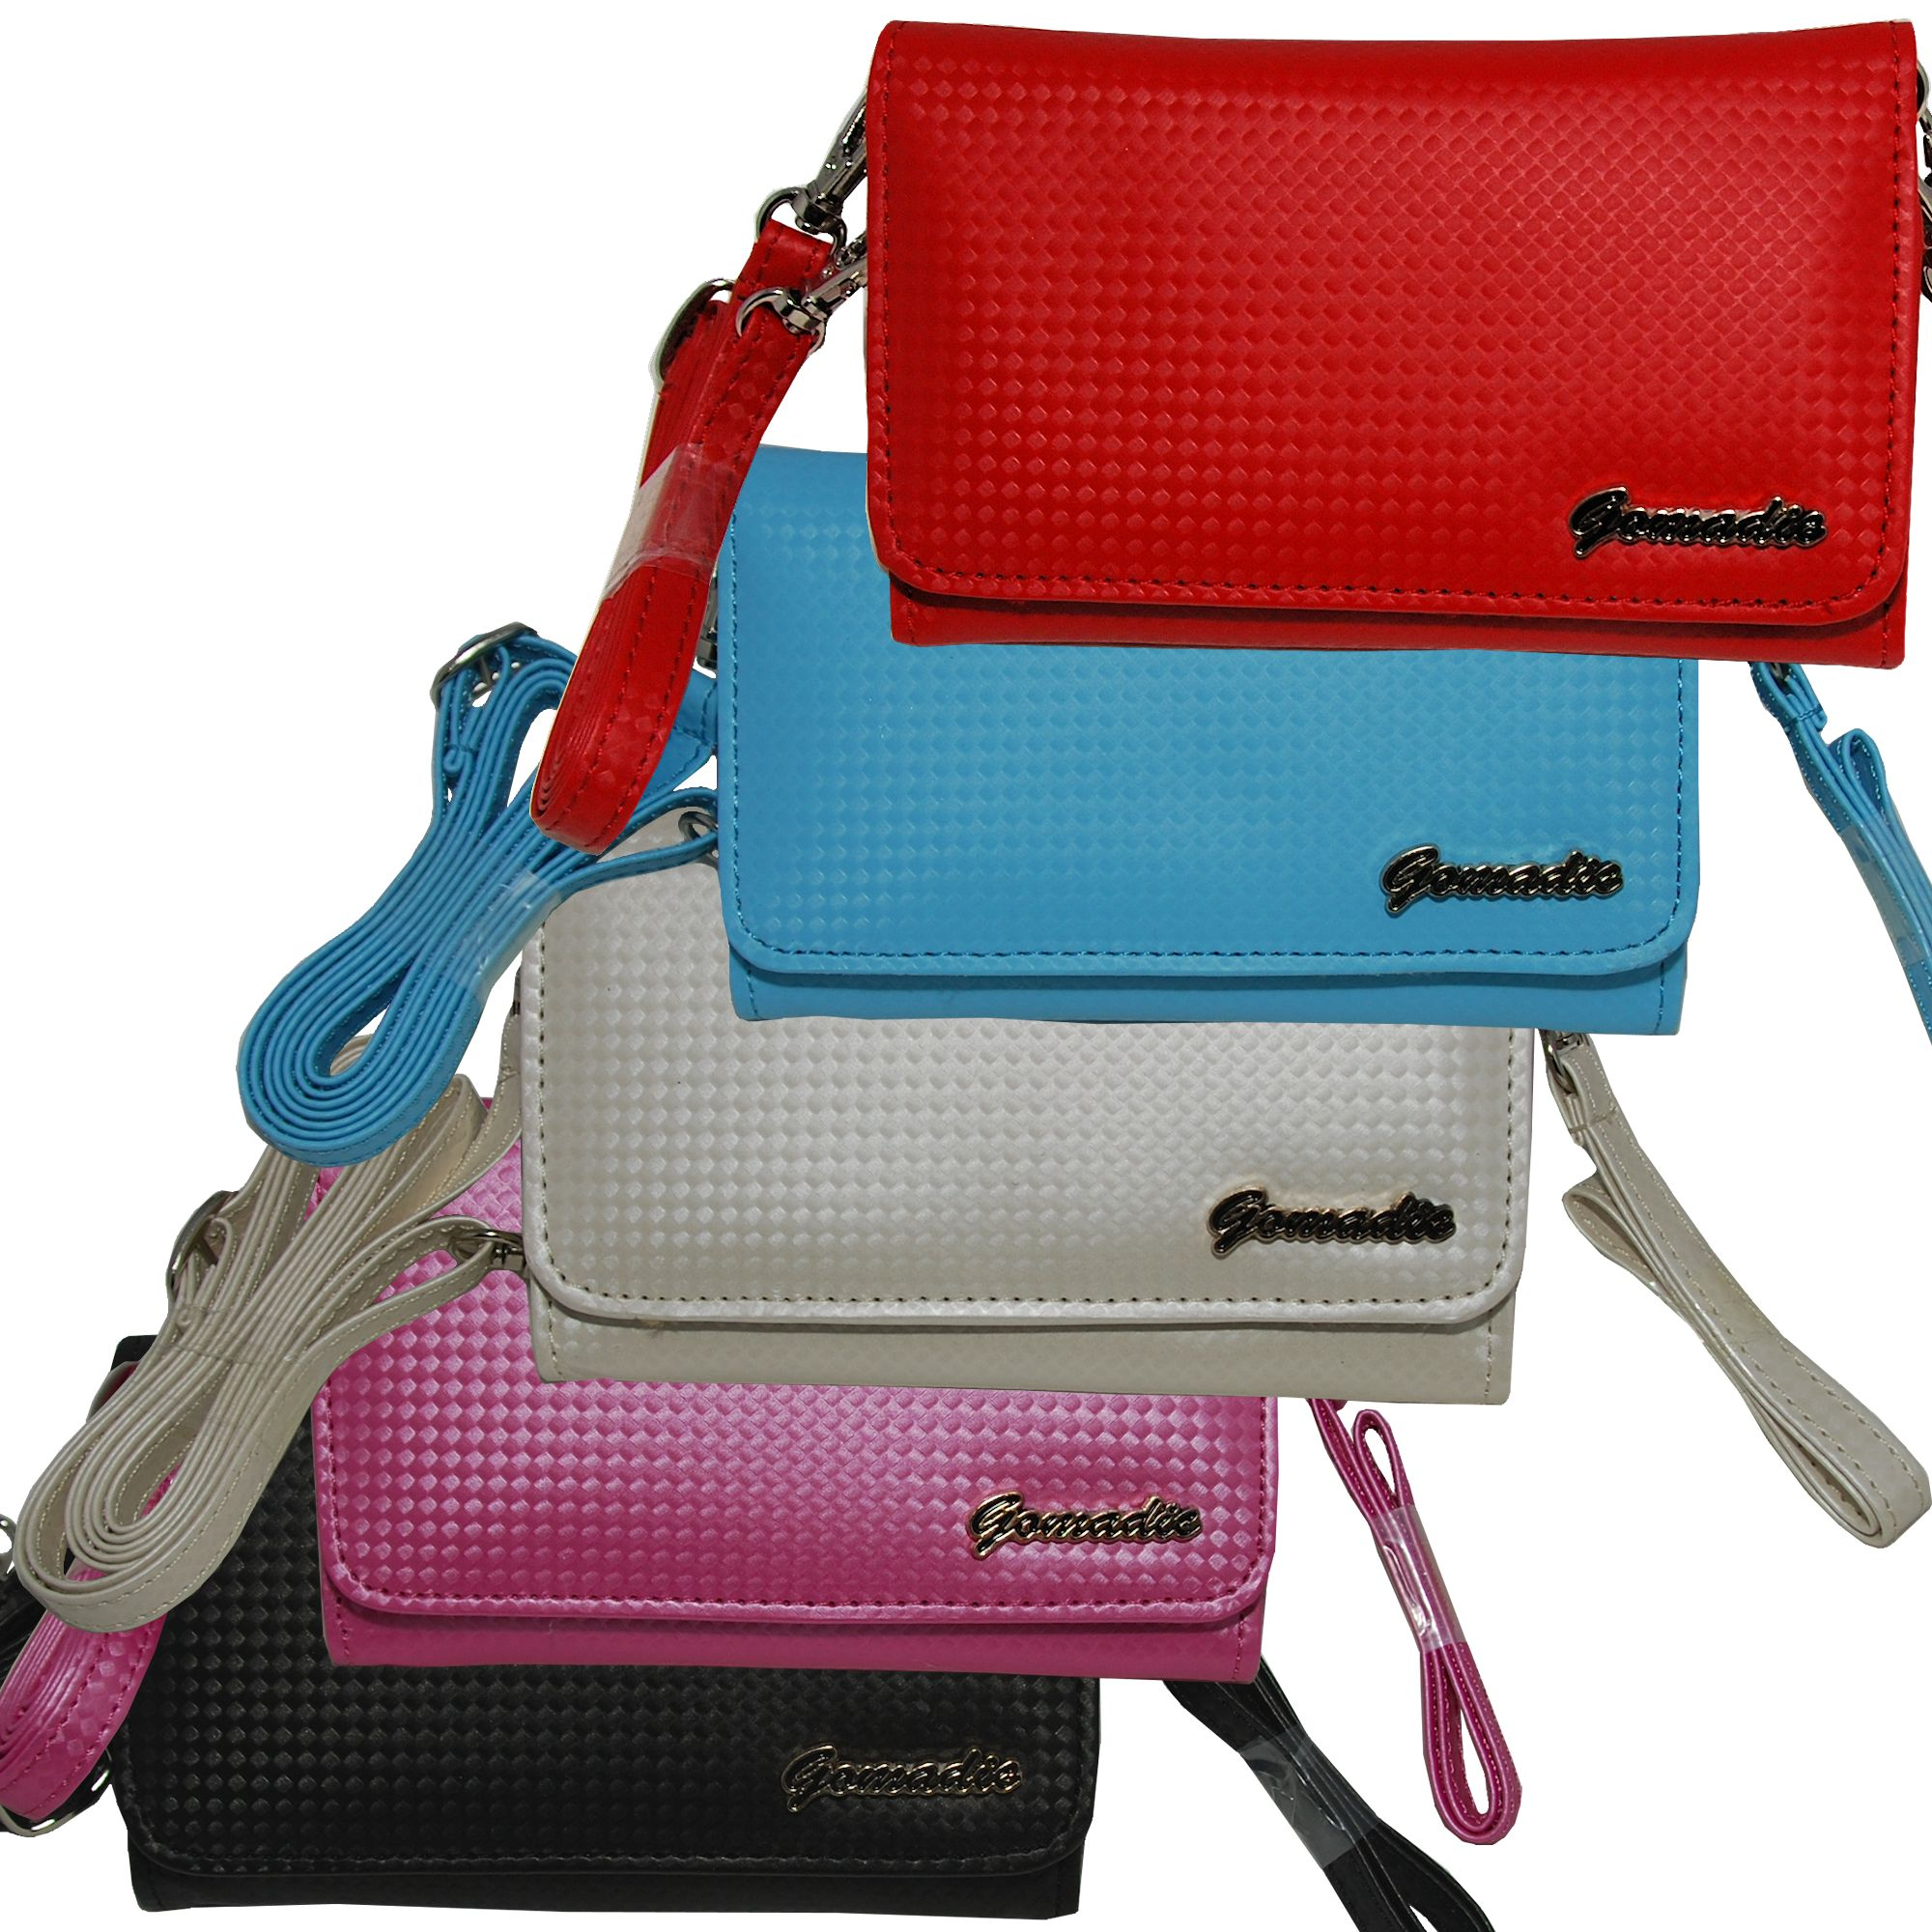 Purse Handbag Case for the HTC HD7 with both a hand and shoulder loop - Color Options Blue Pink White Black and Red